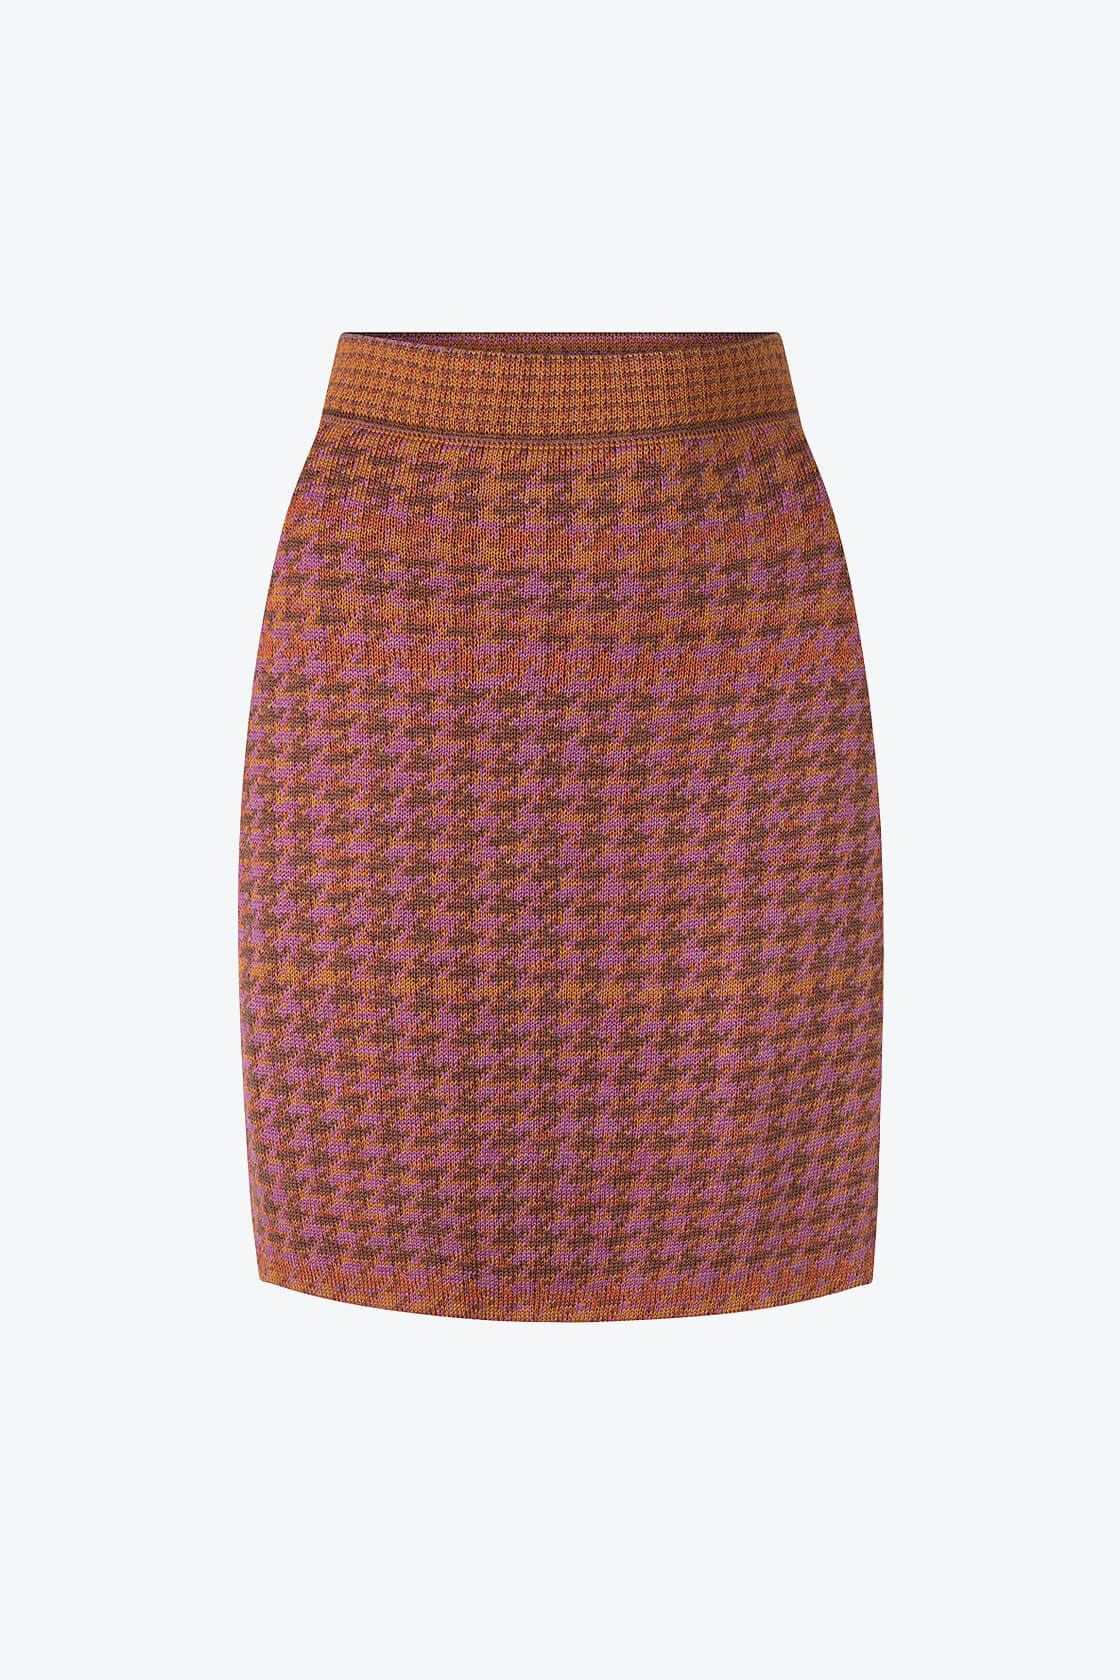 Knitted Knee Length Pencil Skirt In Pieds De Poule Pattern Tweed Heather